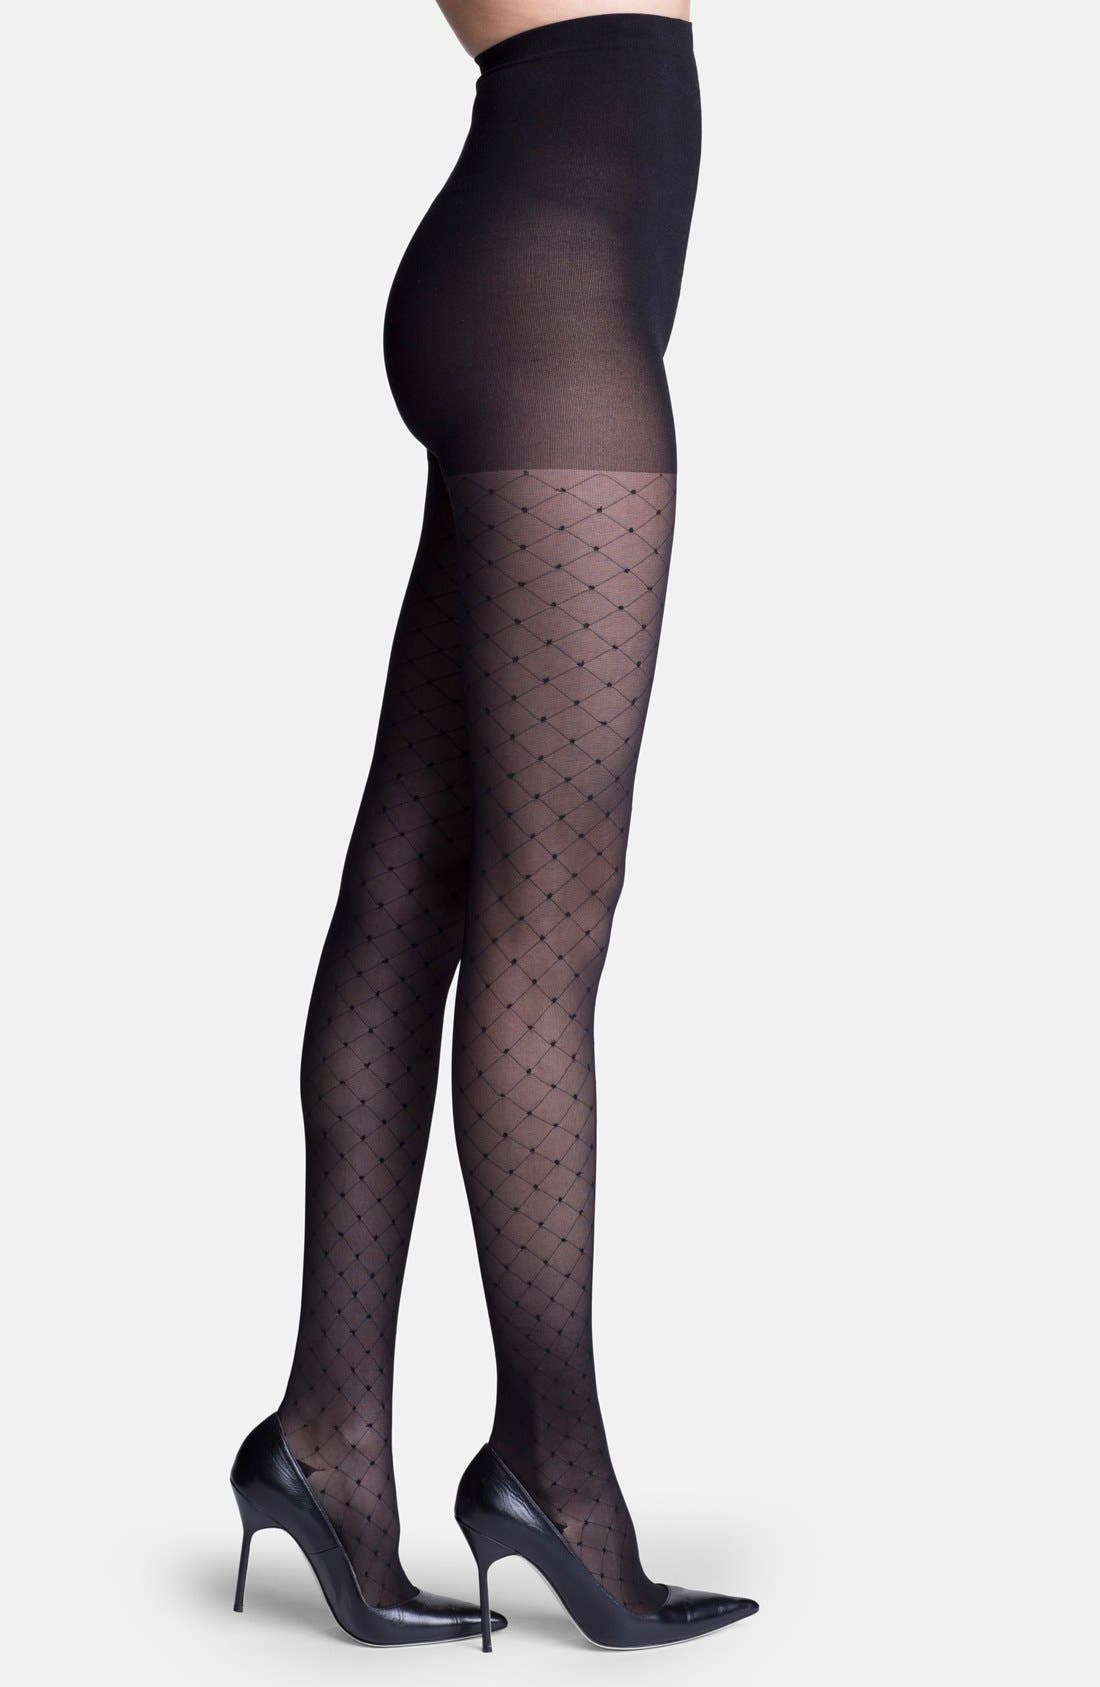 'Starlet' Diamond Pattern Compression Pantyhose,                         Main,                         color, BLACK